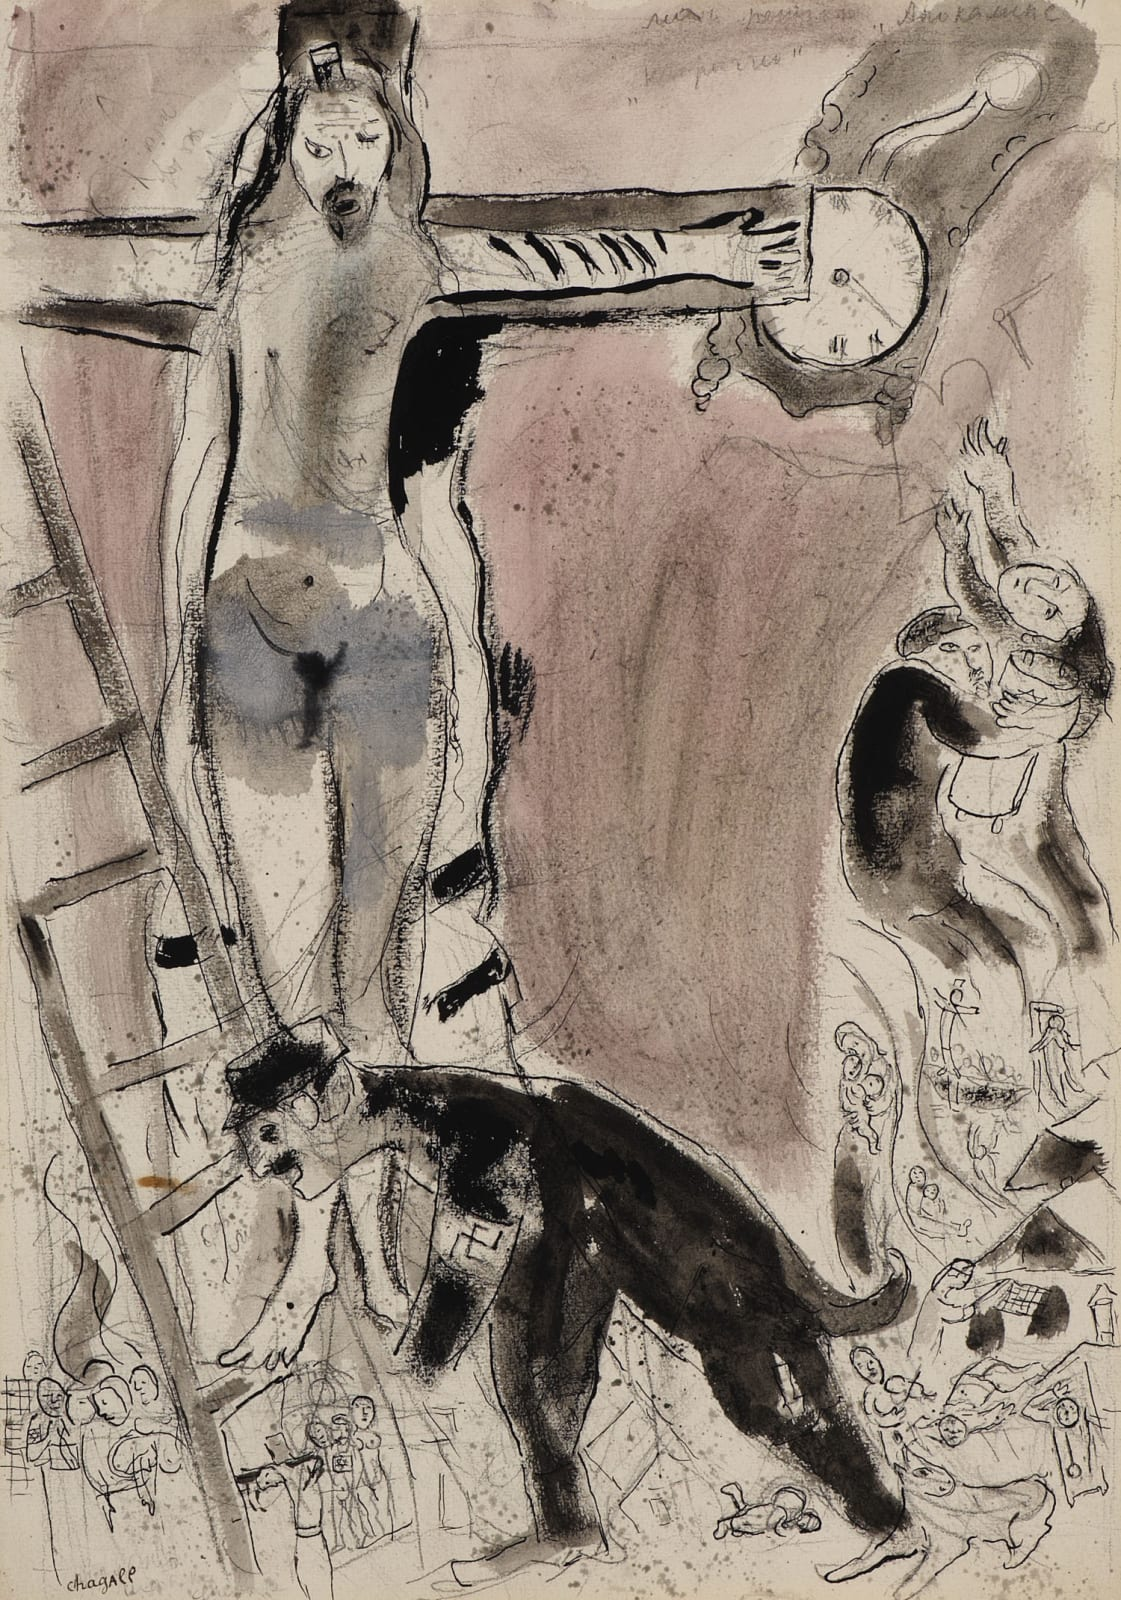 Marc Chagall (1887-1985) Apocalypse en Lilas, Capriccio 1945 Gouache, pencil, indian wash ink and indian ink on paper 51.2 x 36.3 cm Ben Uri Collection © The estate of Marc Chagall To see and discover more about this artist click here